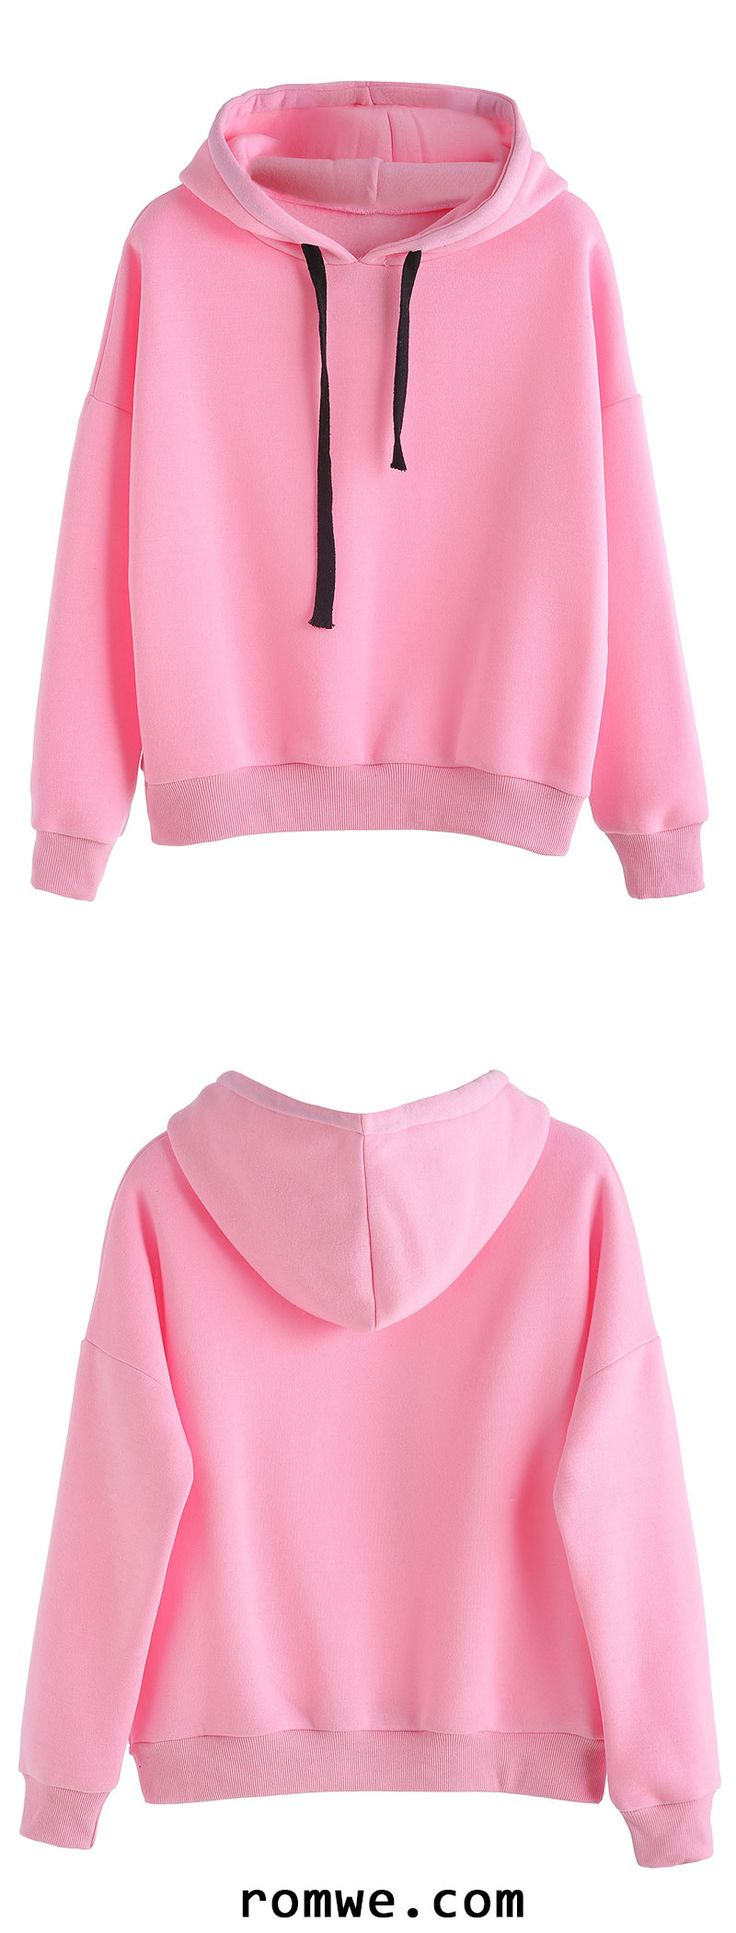 Pink Hooded Sweatshirt With Drawstring In Black